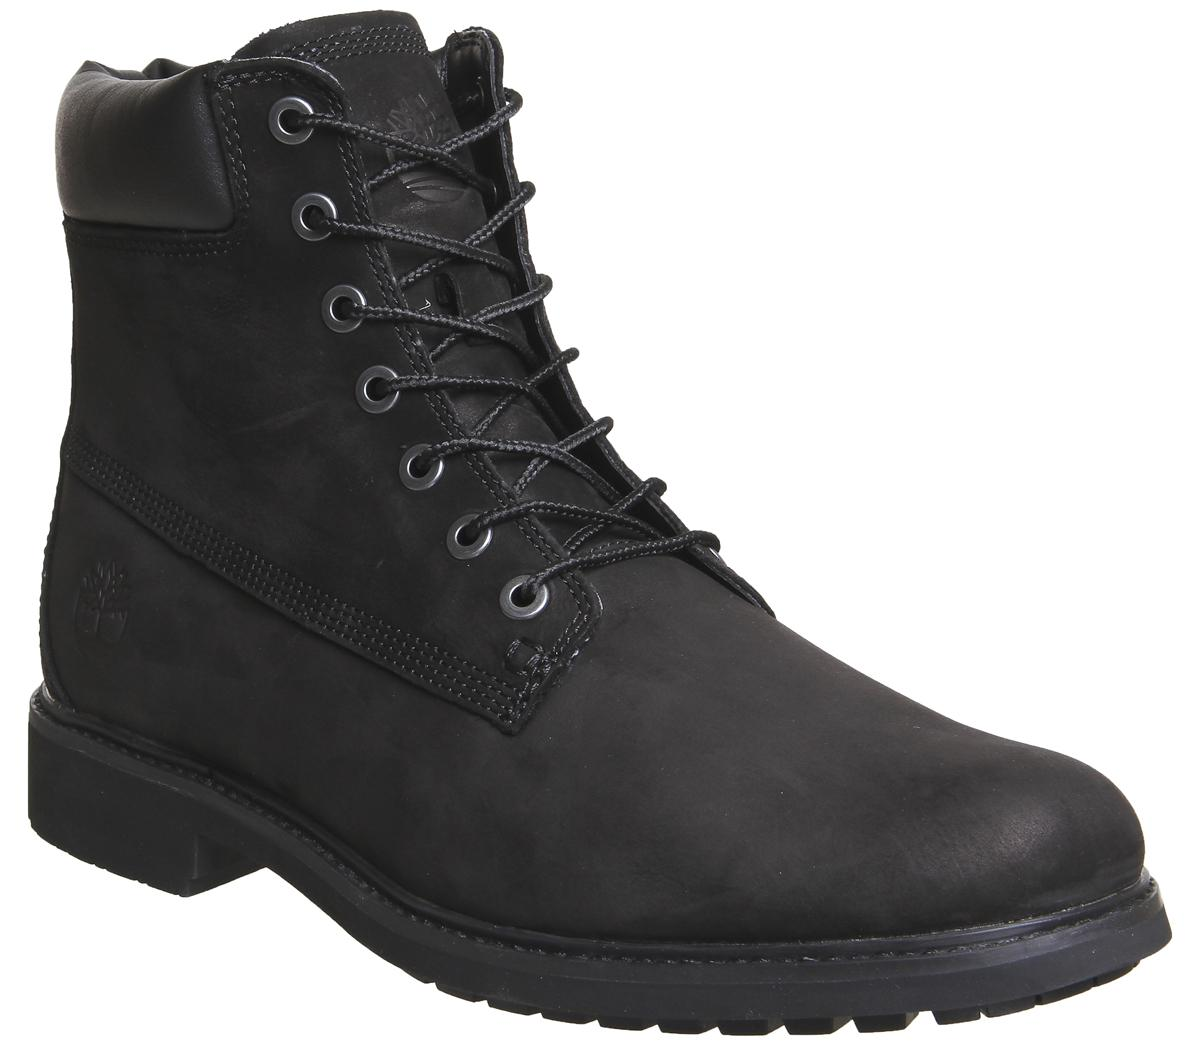 Mens Slim 6 Inch Boots